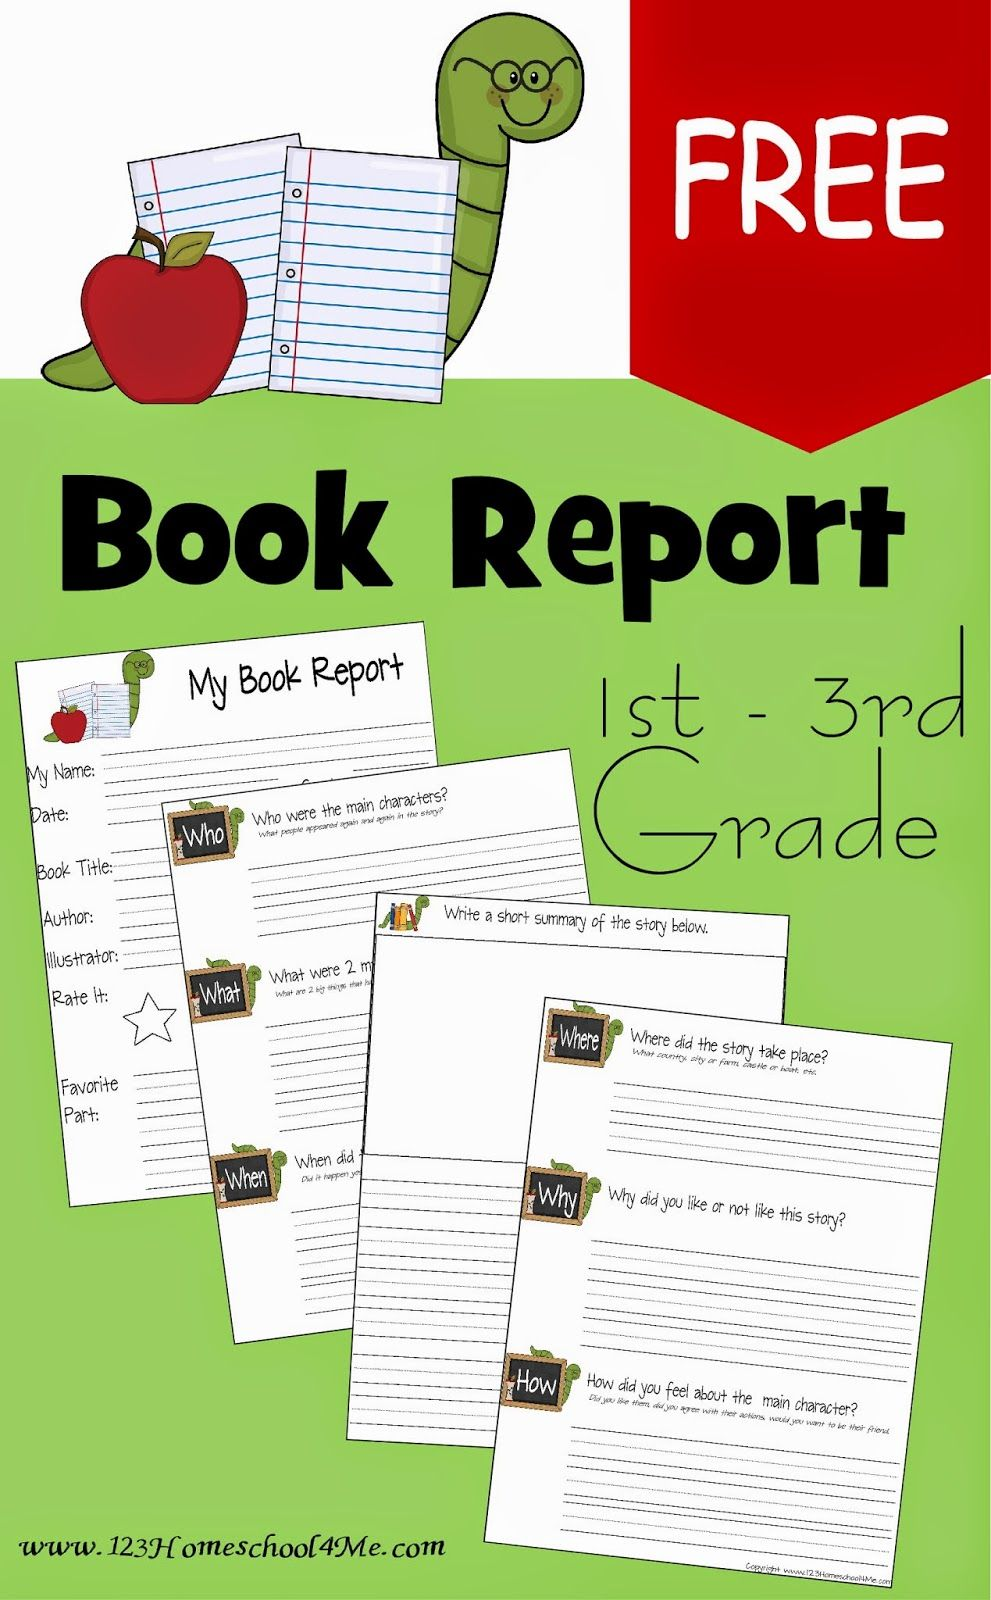 Worksheet Free Printable Books For 2nd Grade book report forms free printable for 1st grade 2nd grade